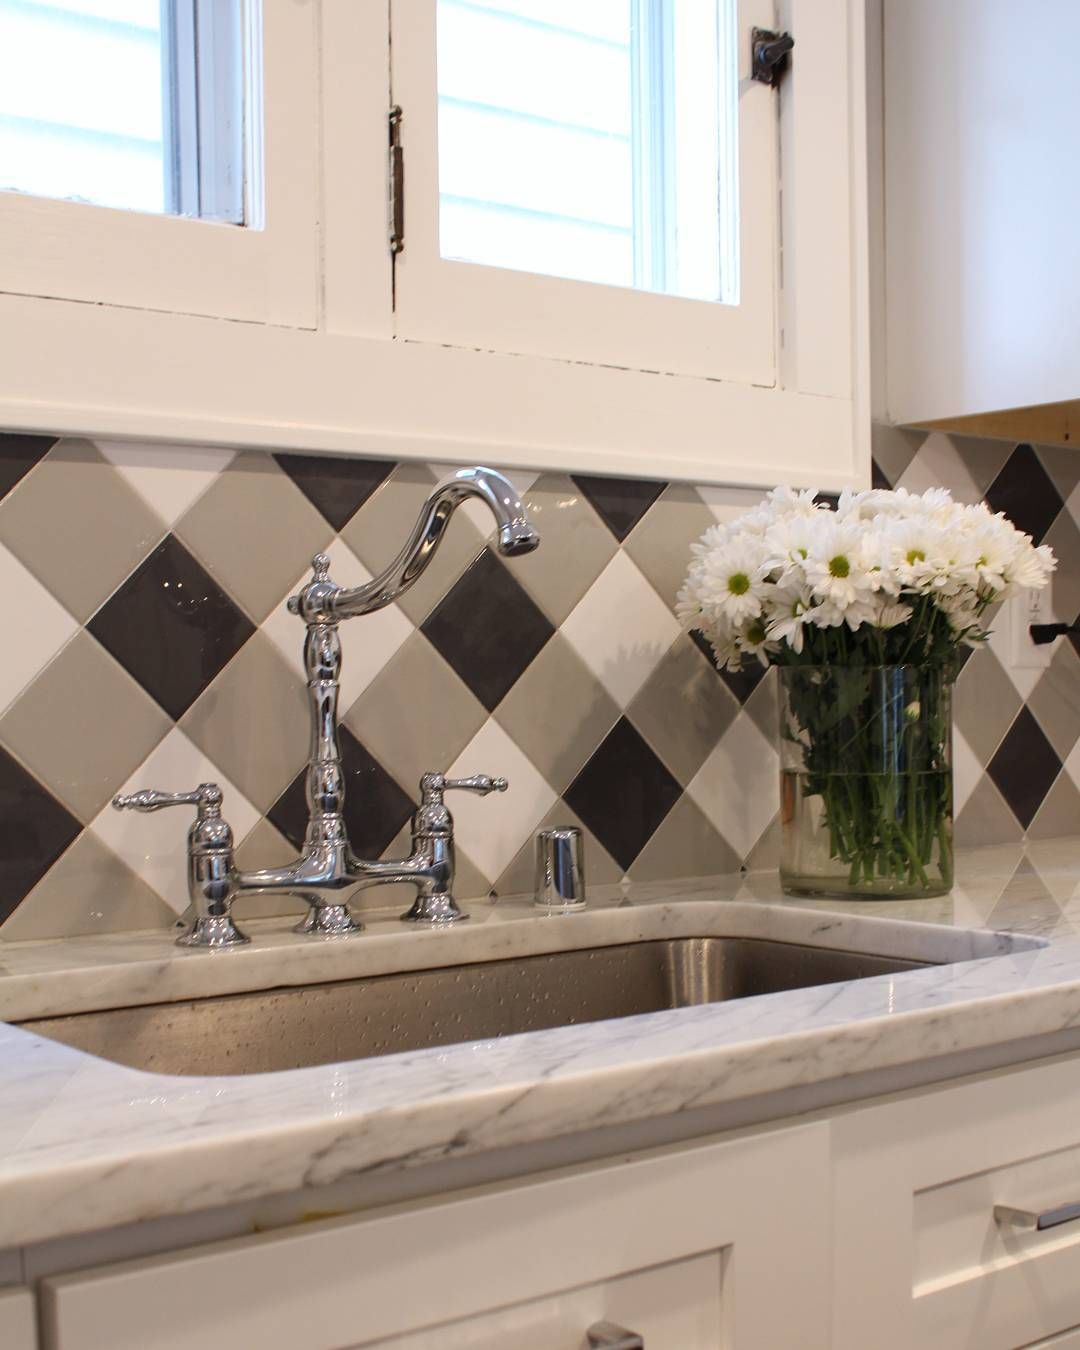 You cannot go wrong with a check tile back splash and carrara marble ...